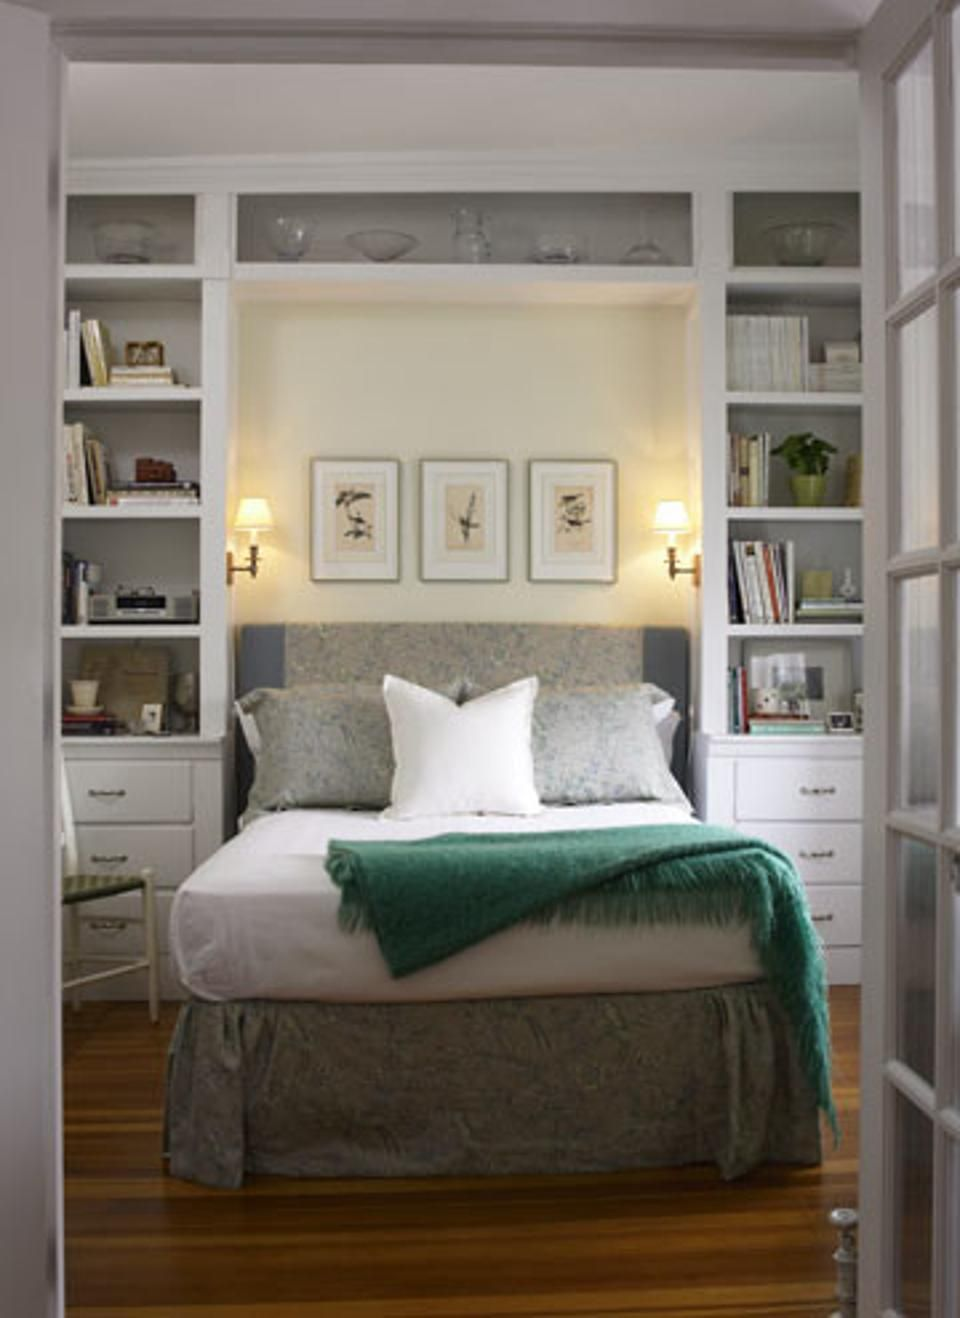 10 tips to make a small bedroom look great compact for 10 by 10 room layout